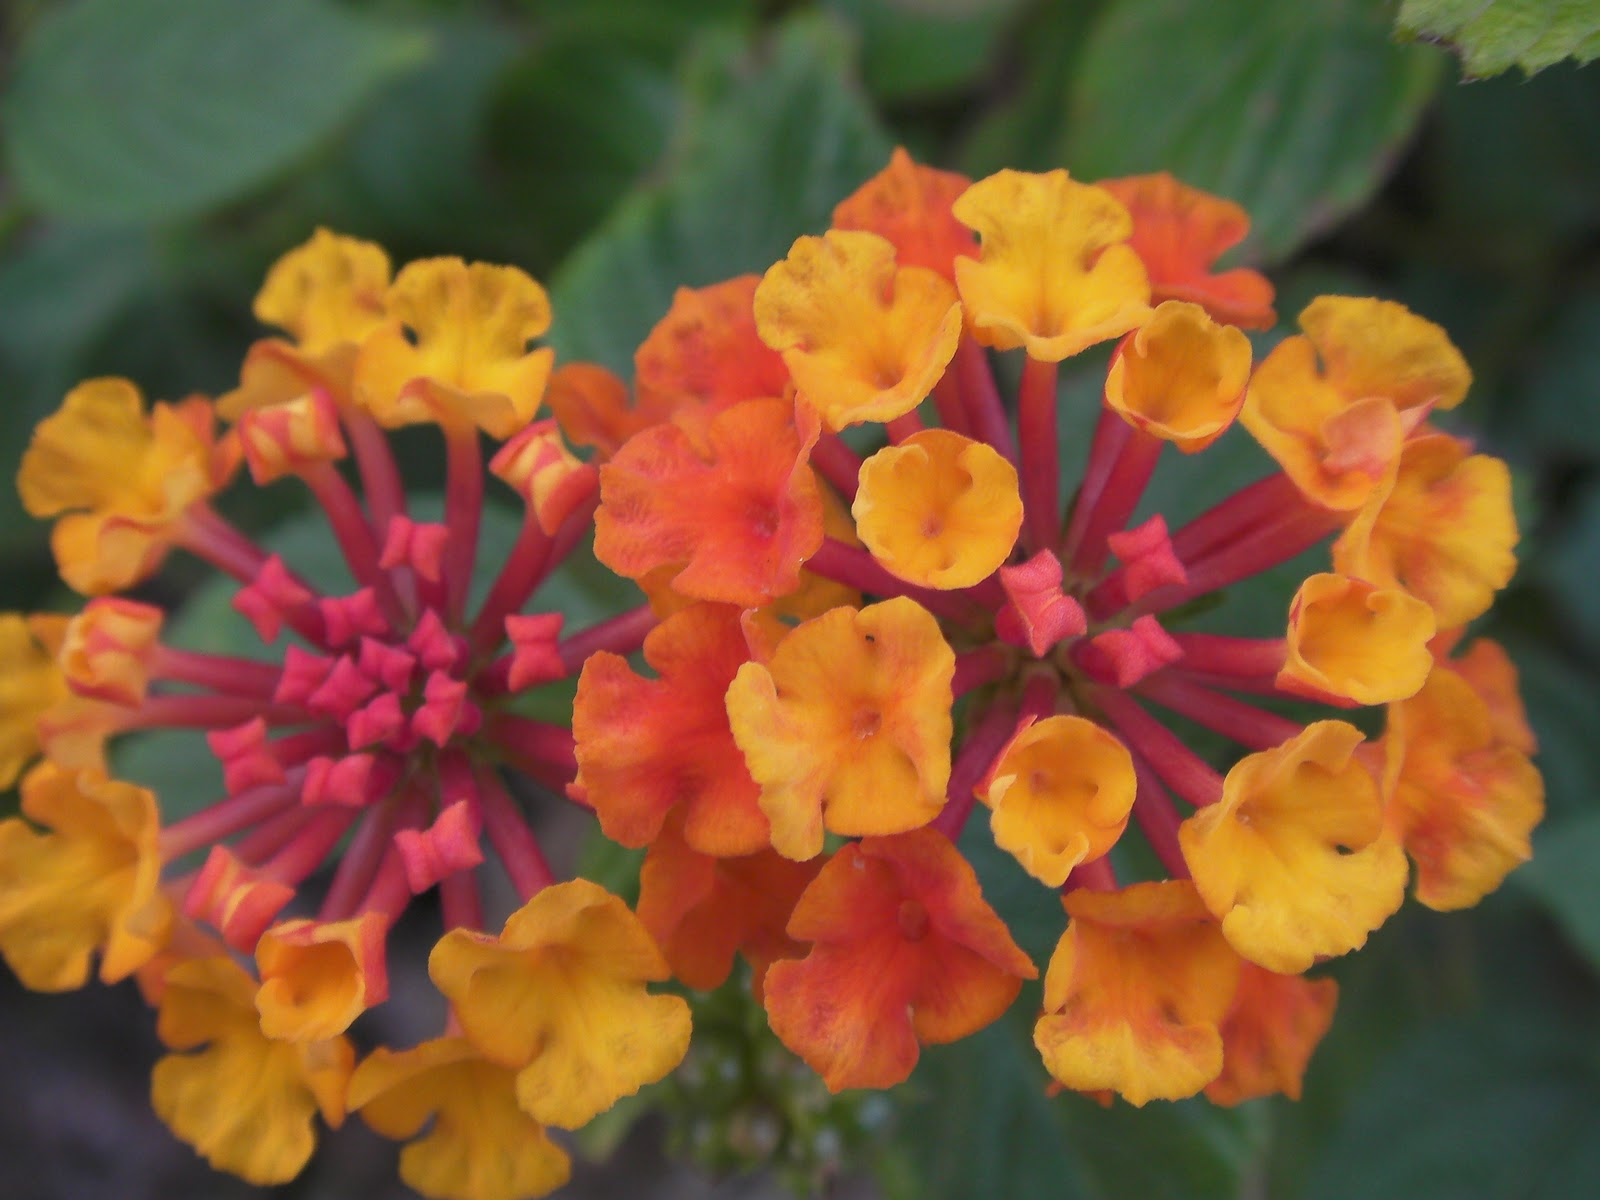 Tropical Island Flowers: Small Vege Garden In A Suburb: Tropical Flowers In